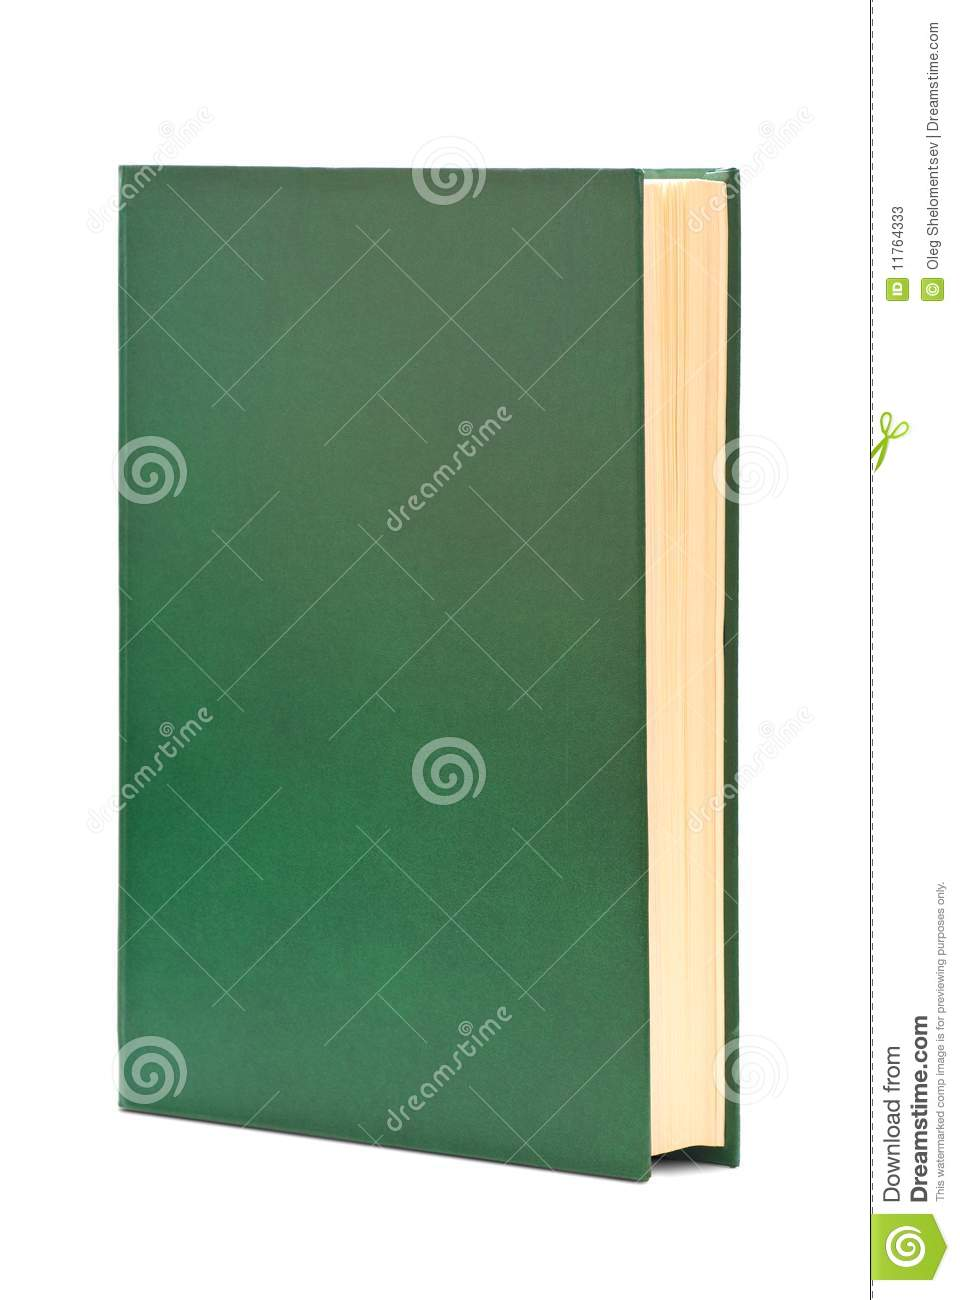 Cookbook With Green Cover : Thick book in green cover stock photos image